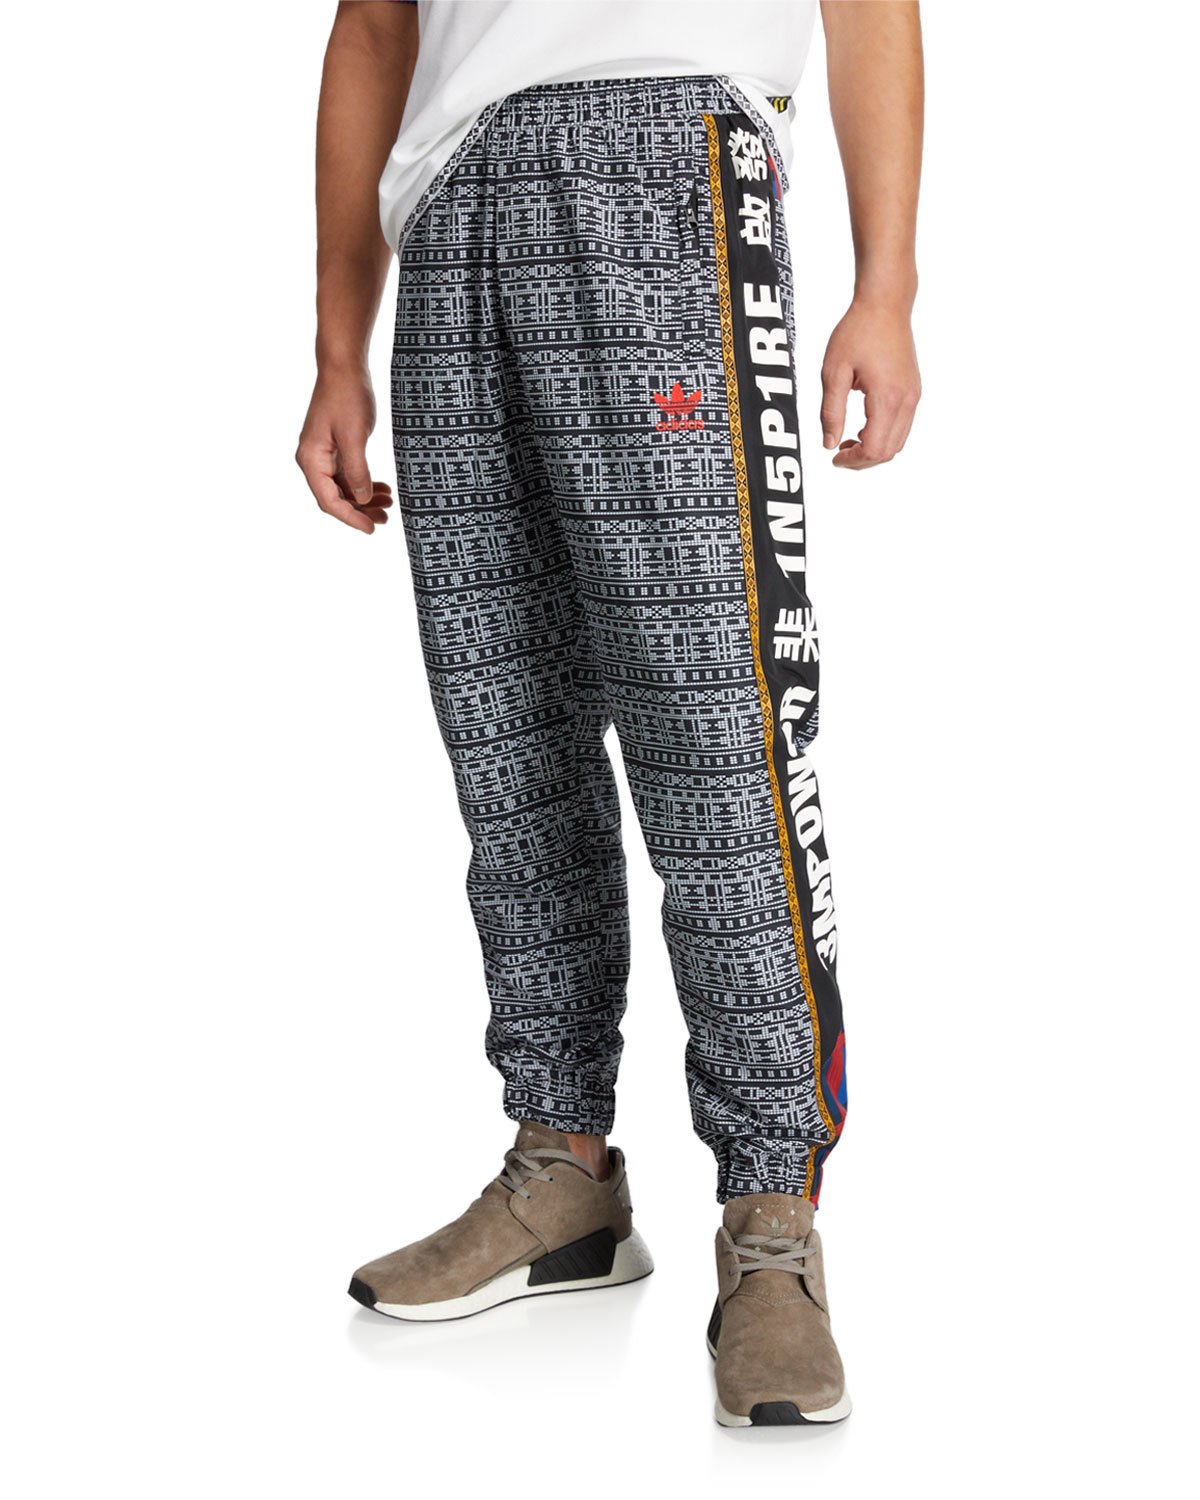 d80ff7be06e7 Adidas Originals Men s X Pharrell Williams Solarhu Graphic-Print Track  Pants In Black White